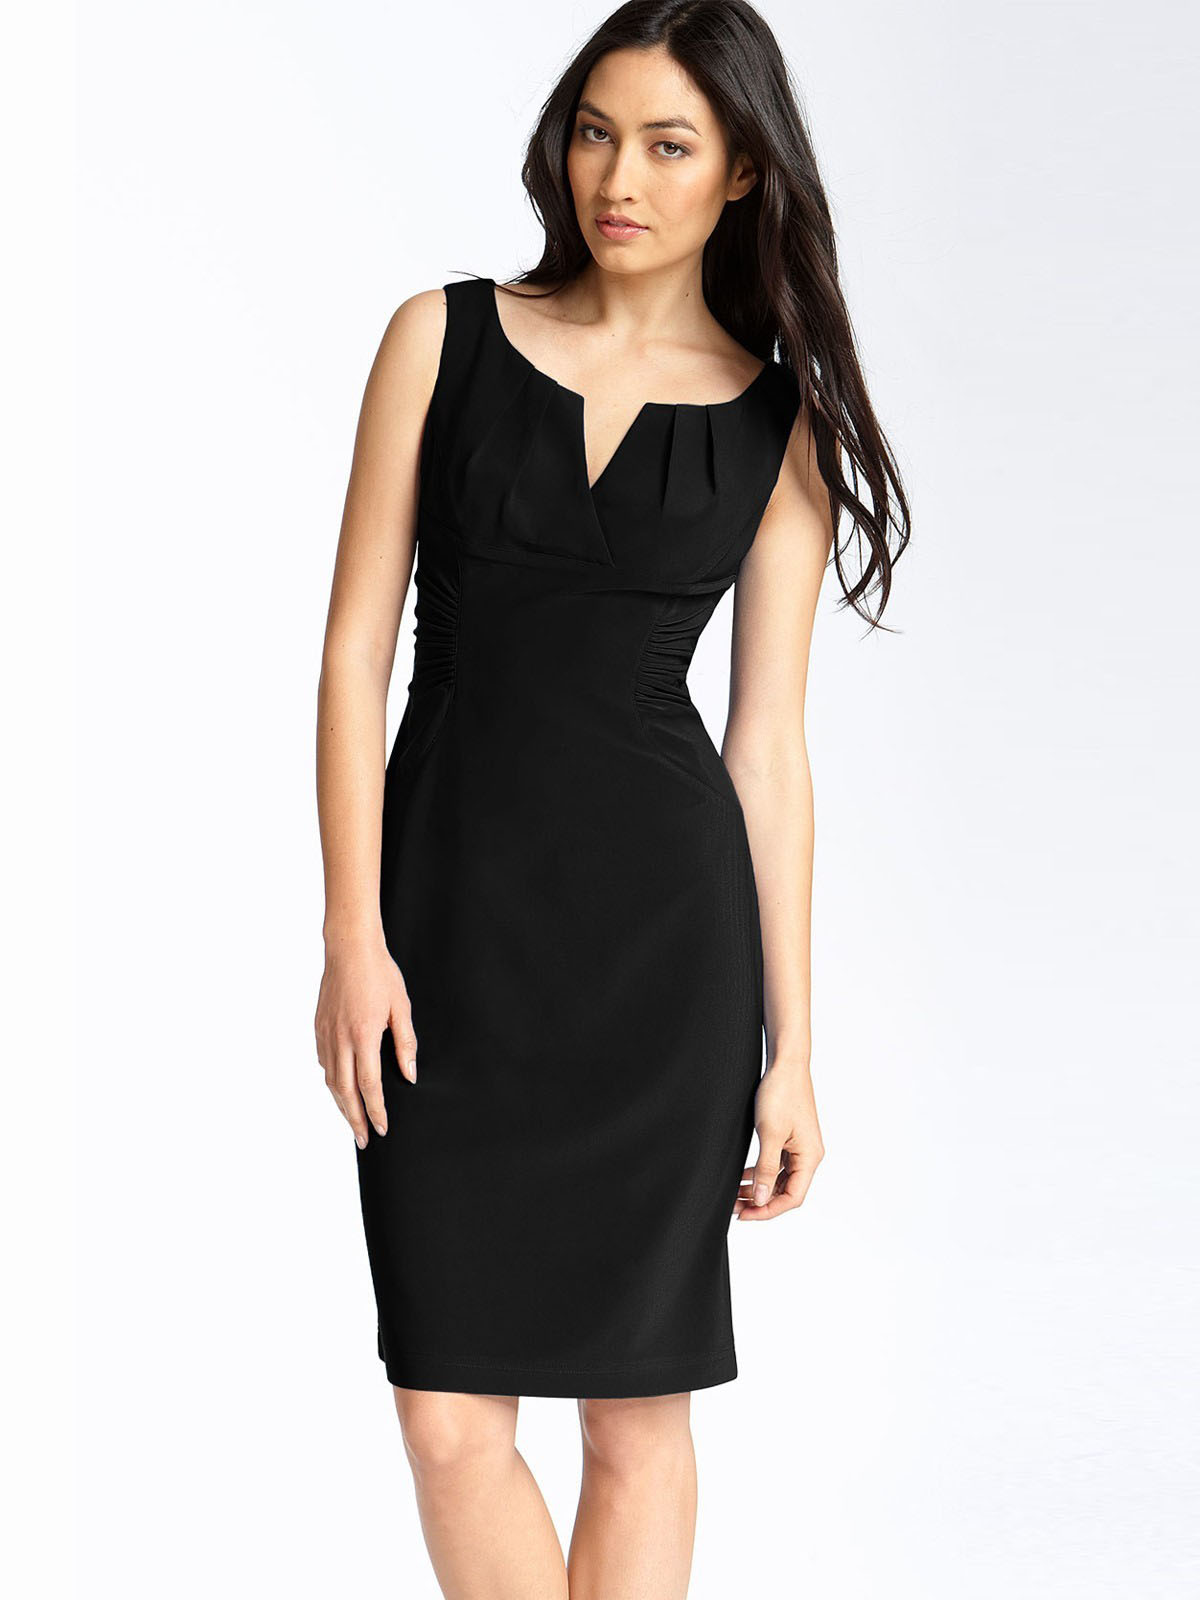 Black Cocktail Dress | Dressed Up Girl